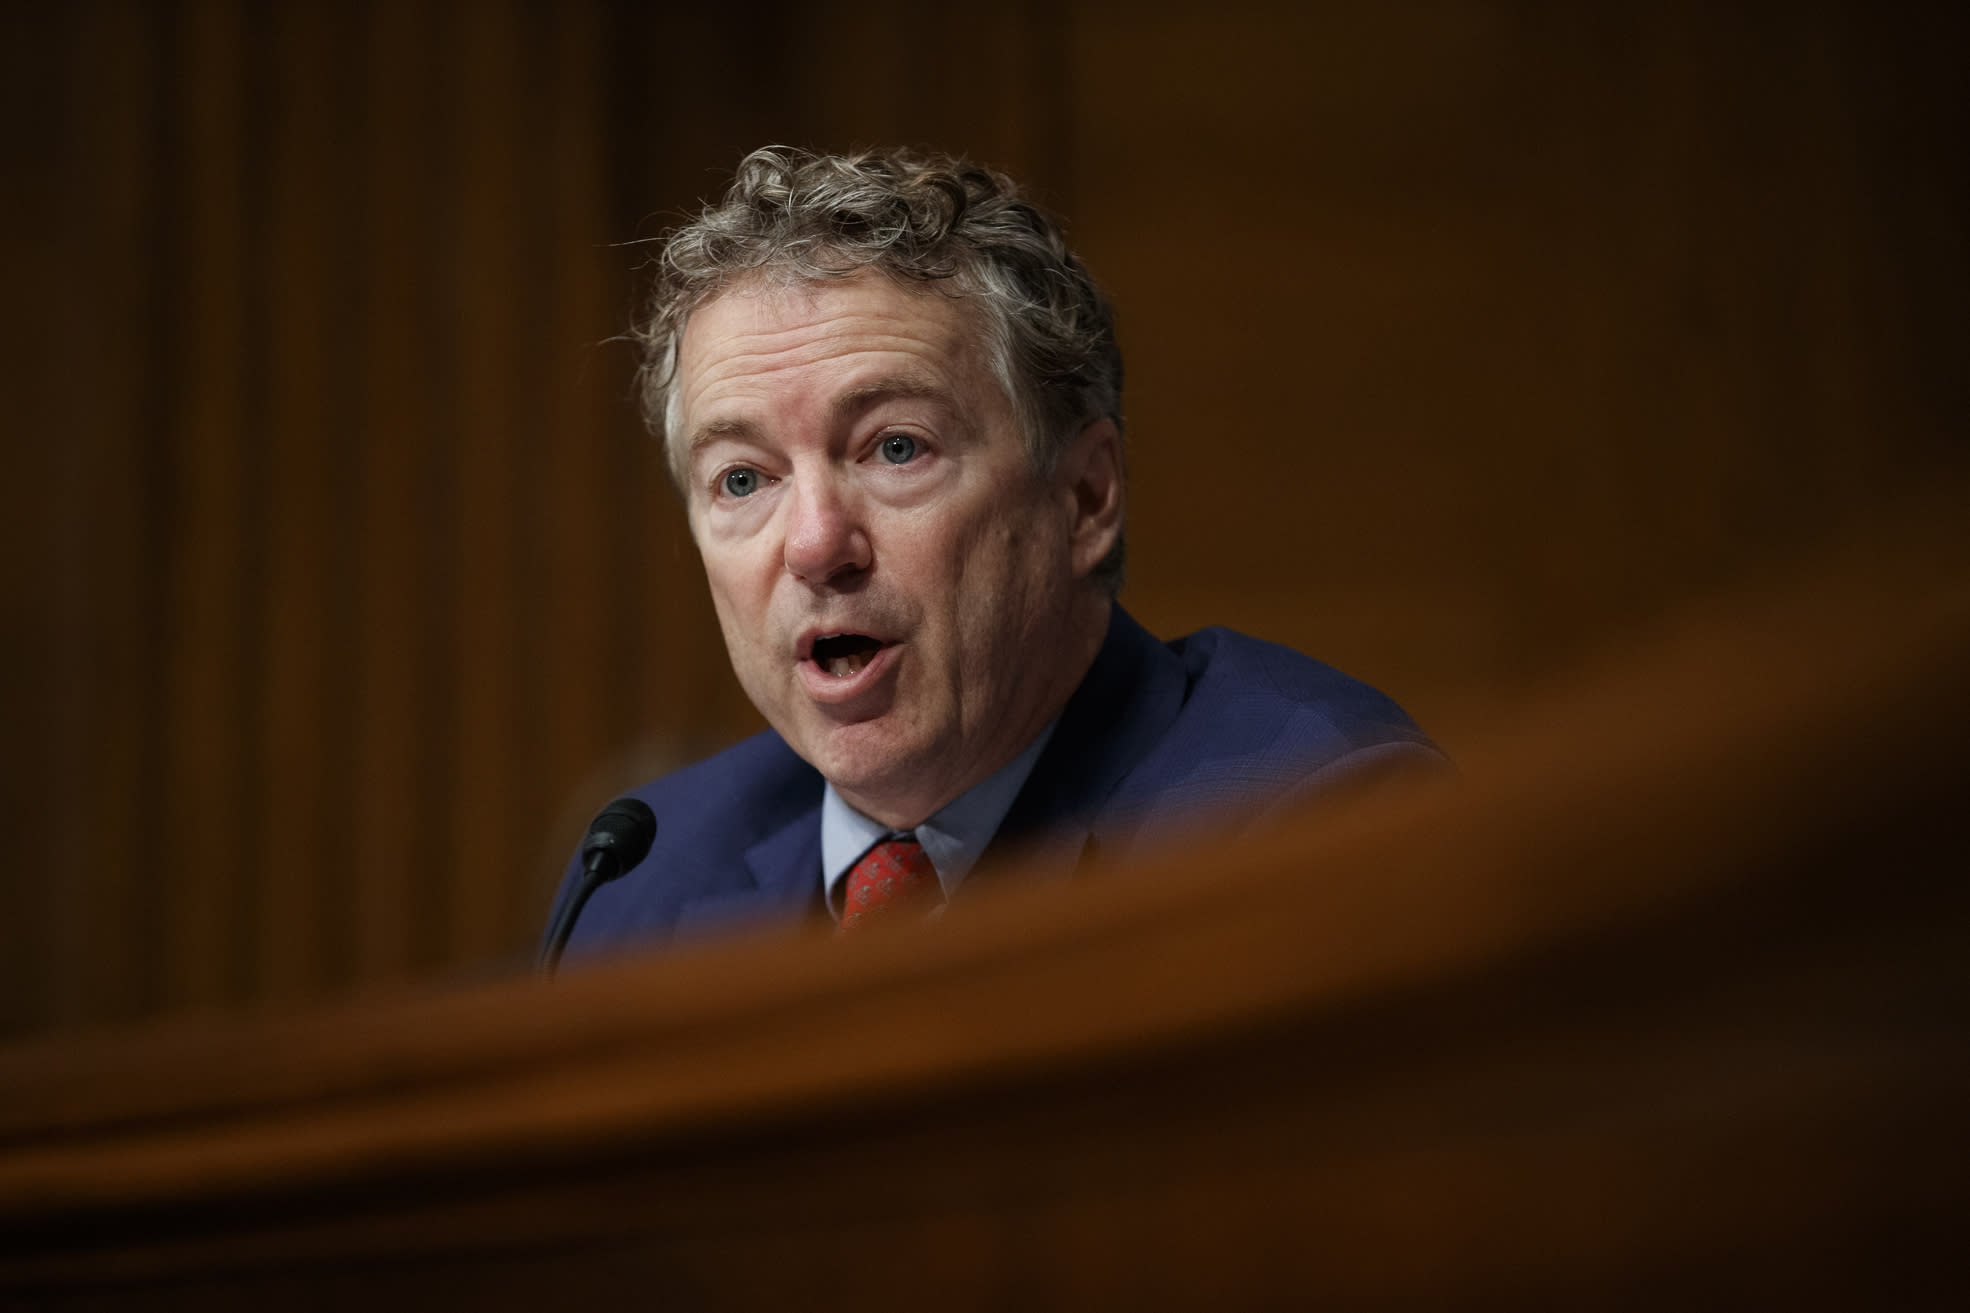 Rand Paul, Liz Cheney trade jabs over foreign policy views